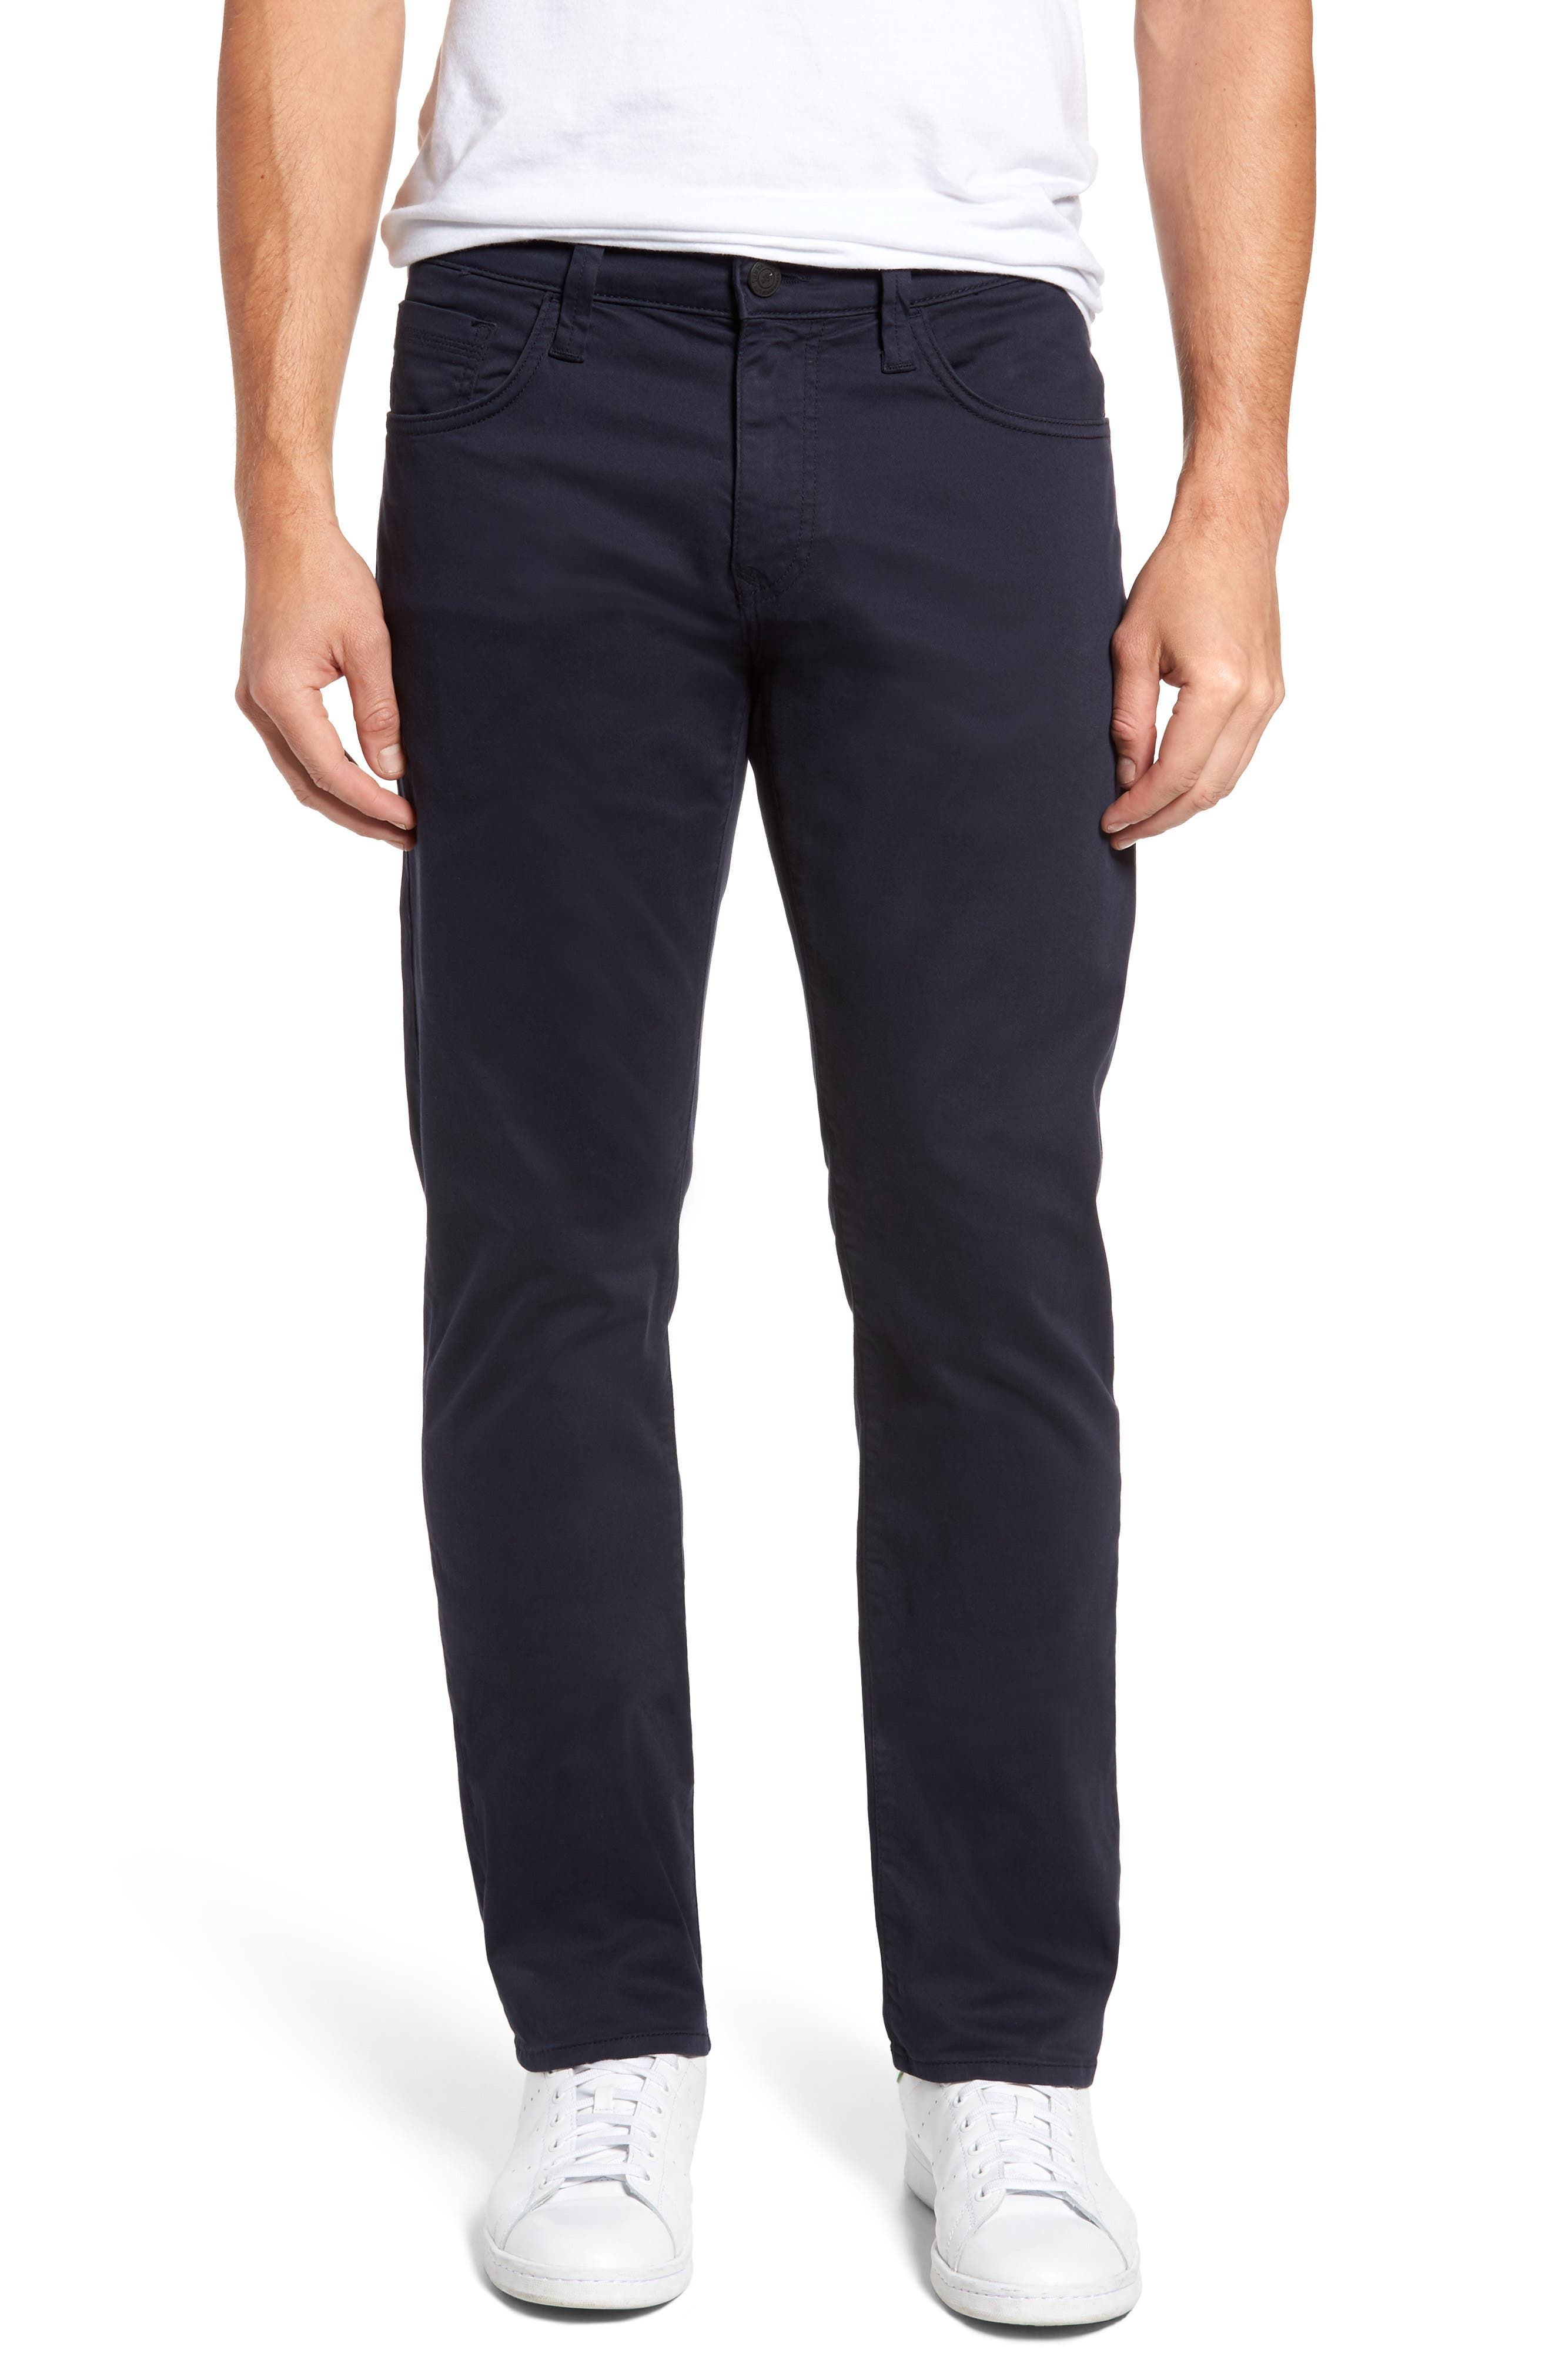 Zach Straight Fit Twill Pants,                             Main thumbnail 1, color,                             Dark Navy Twill